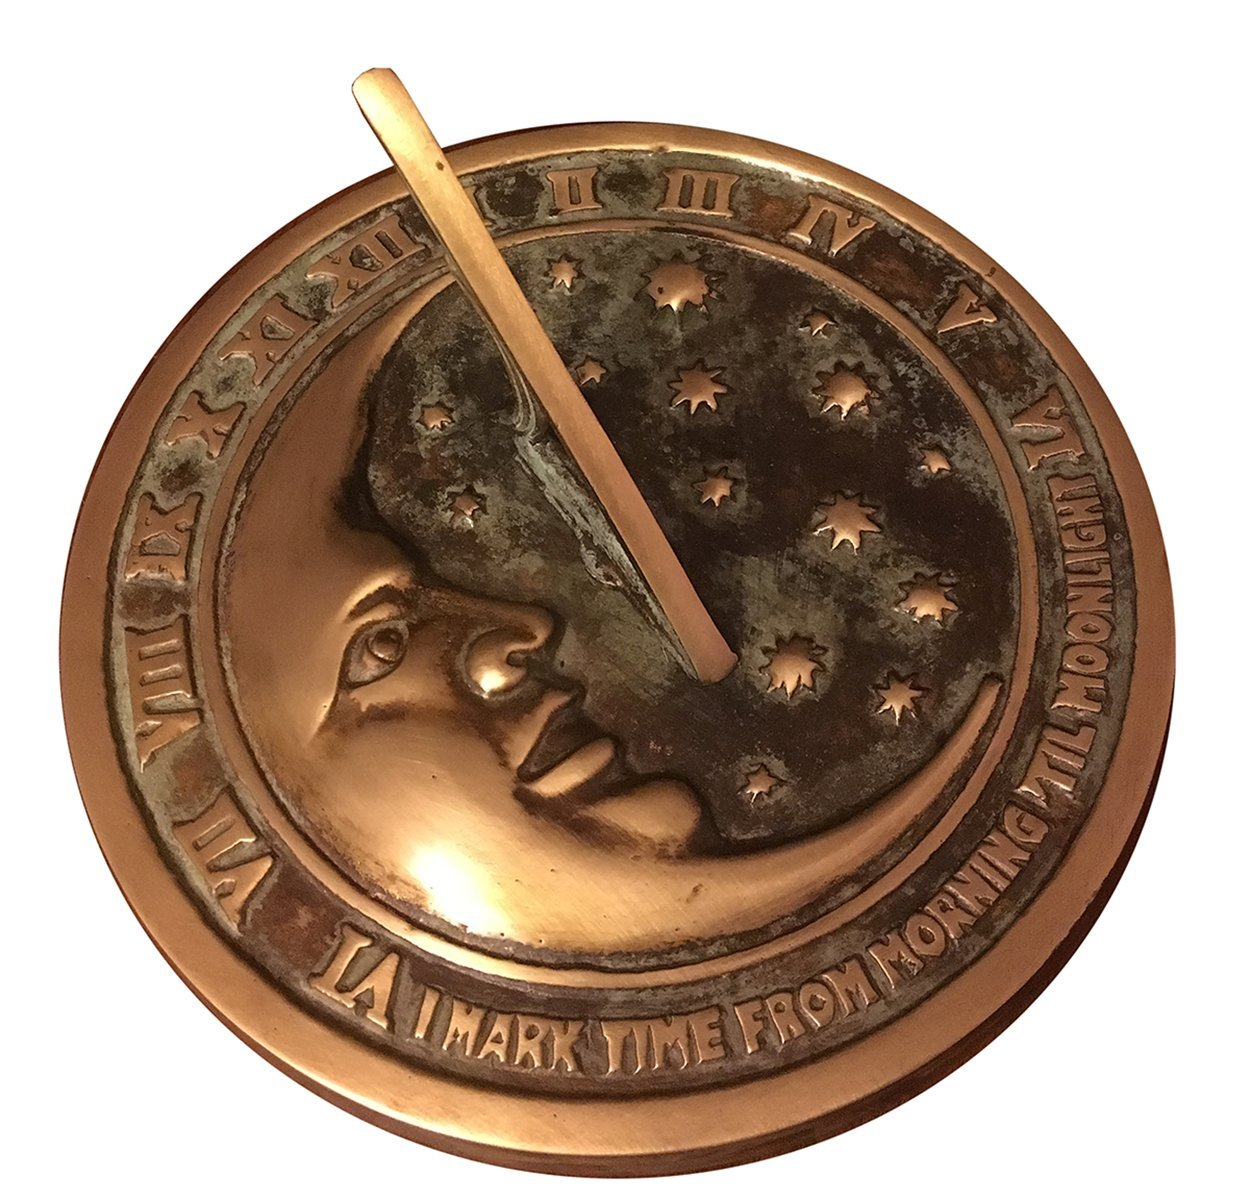 Rome 2312 Moon and Stars Sundial, Solid Brass with Verdigris Highlights, 8.5-Inch Diameter